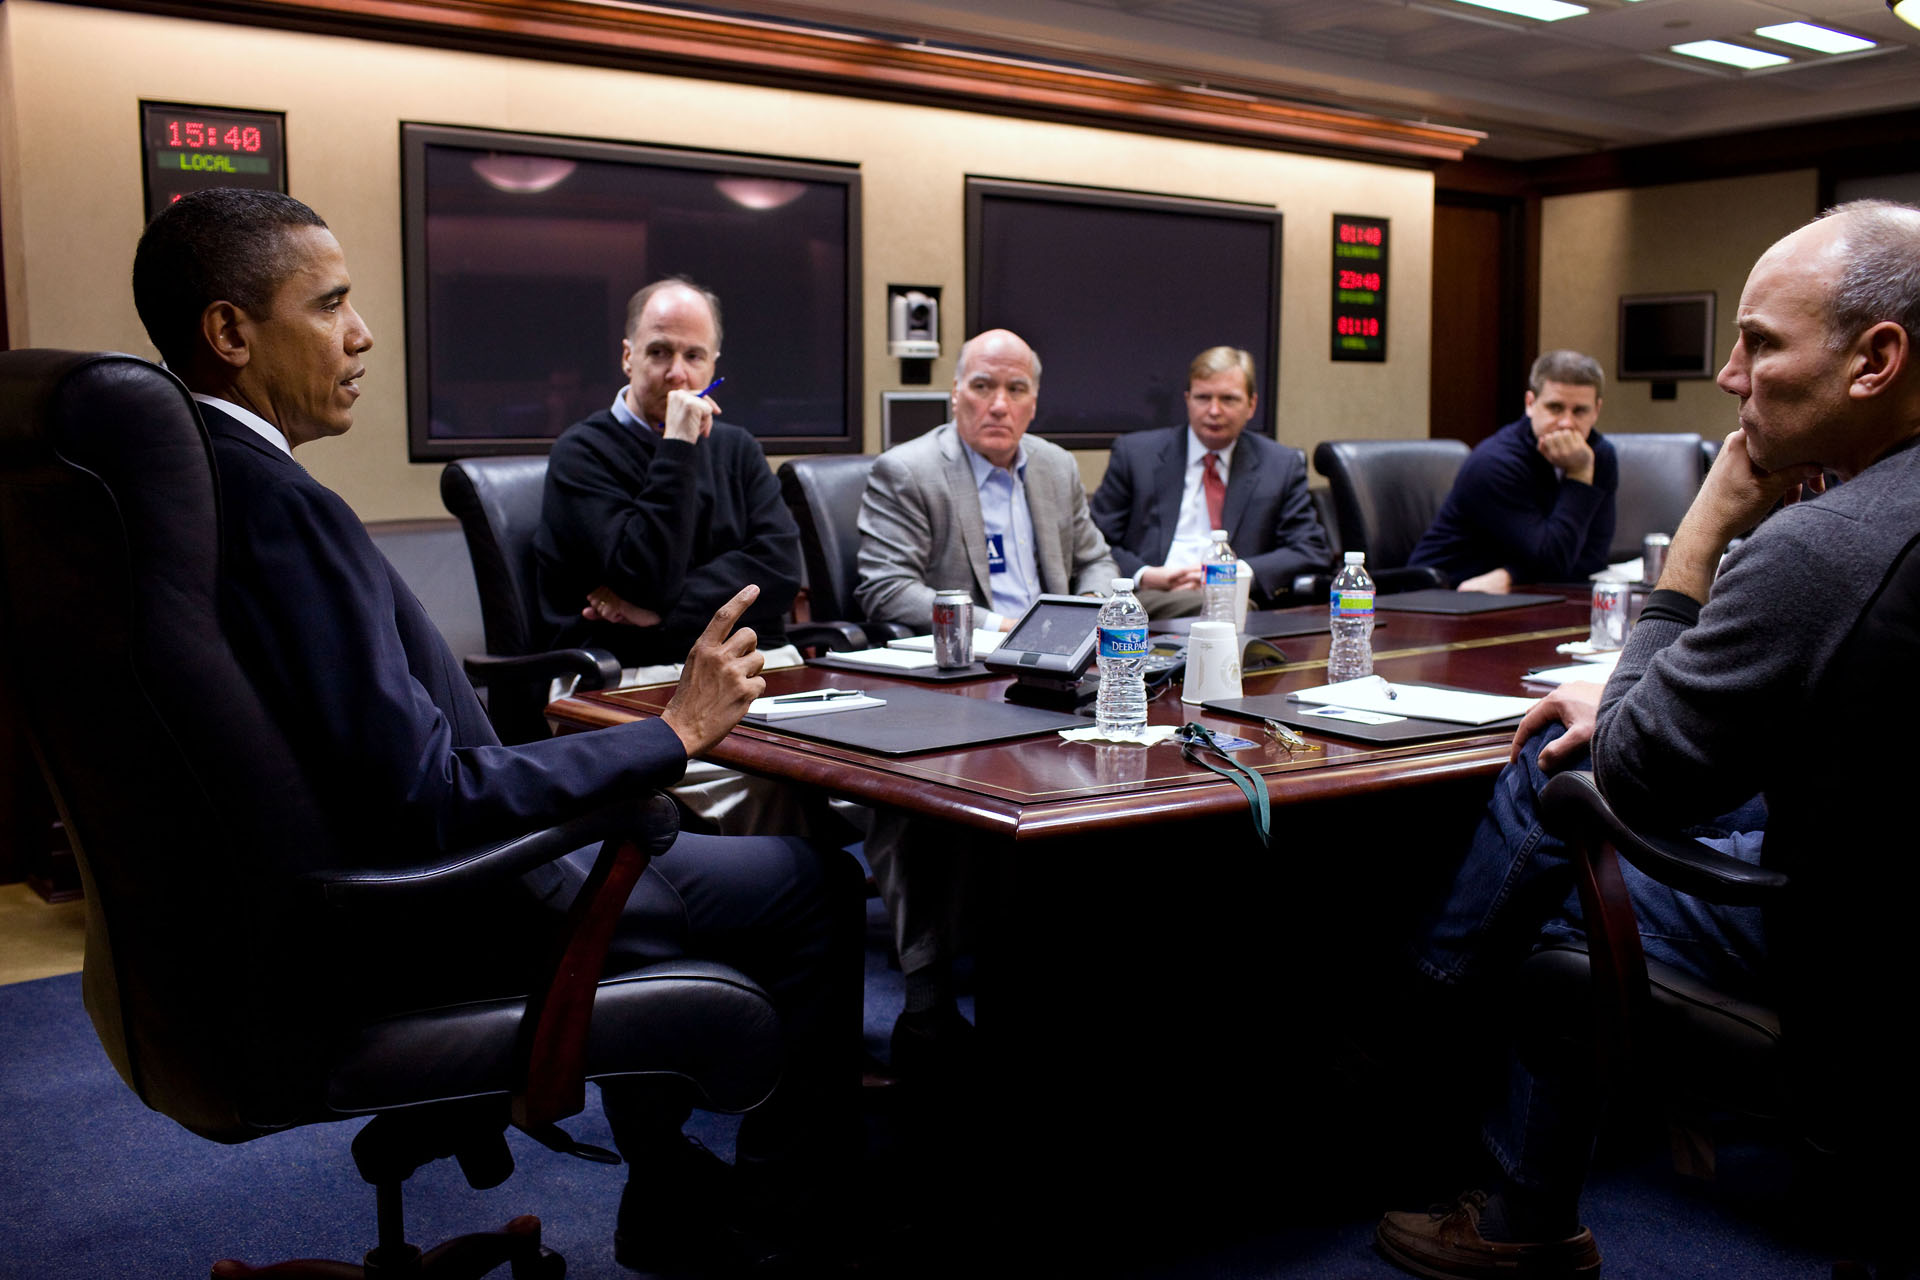 The President Discusses the Tucson, Arizona Shootings in the Situation Room